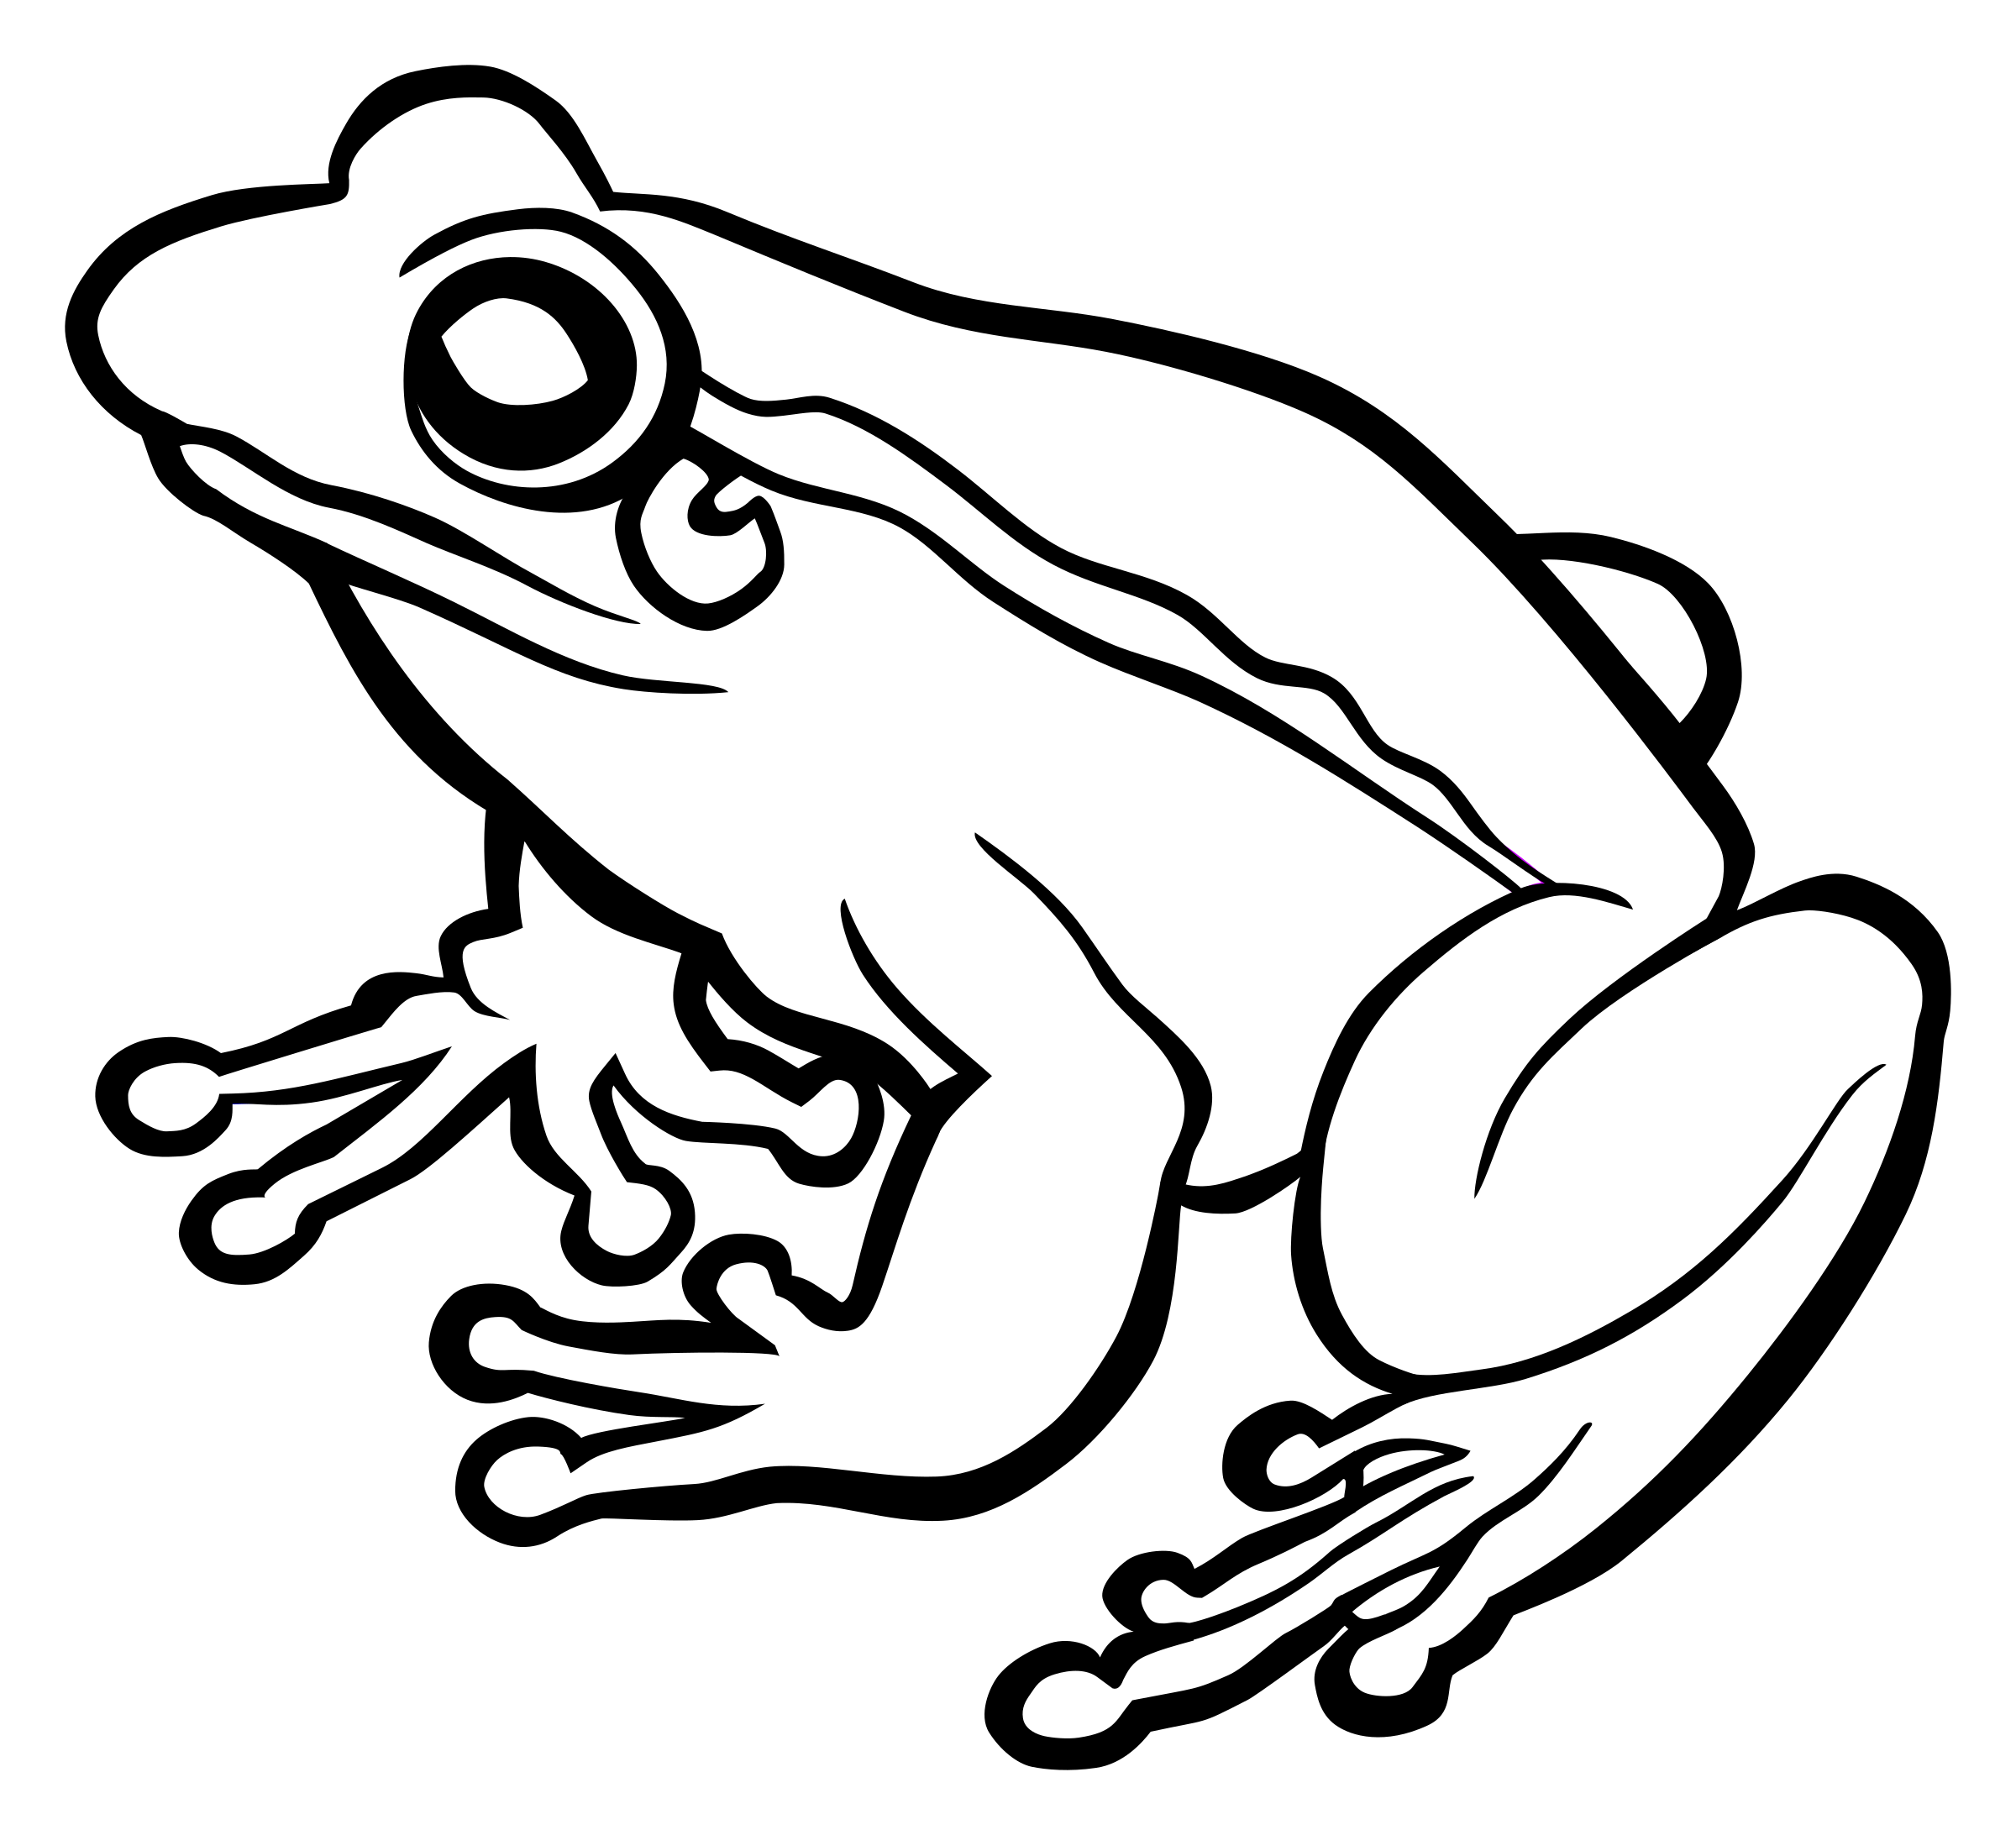 Line Drawing Frog : Clipart frog lineart